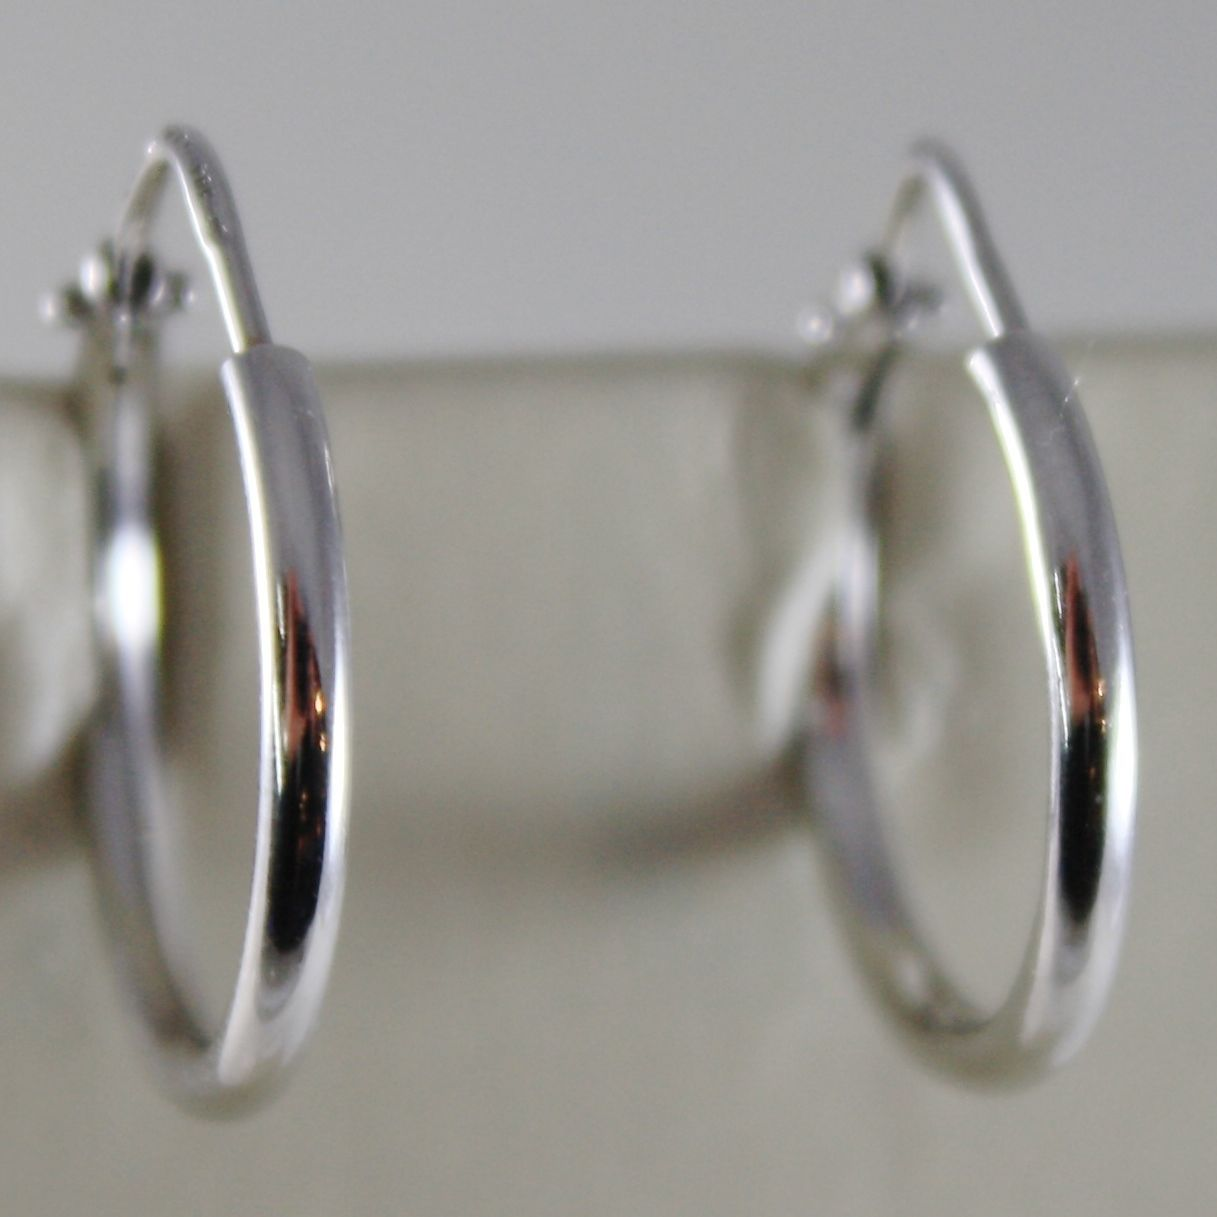 18K WHITE GOLD EARRINGS LITTLE CIRCLE HOOP 17 MM 0.67 IN. DIAMETER MADE IN ITALY